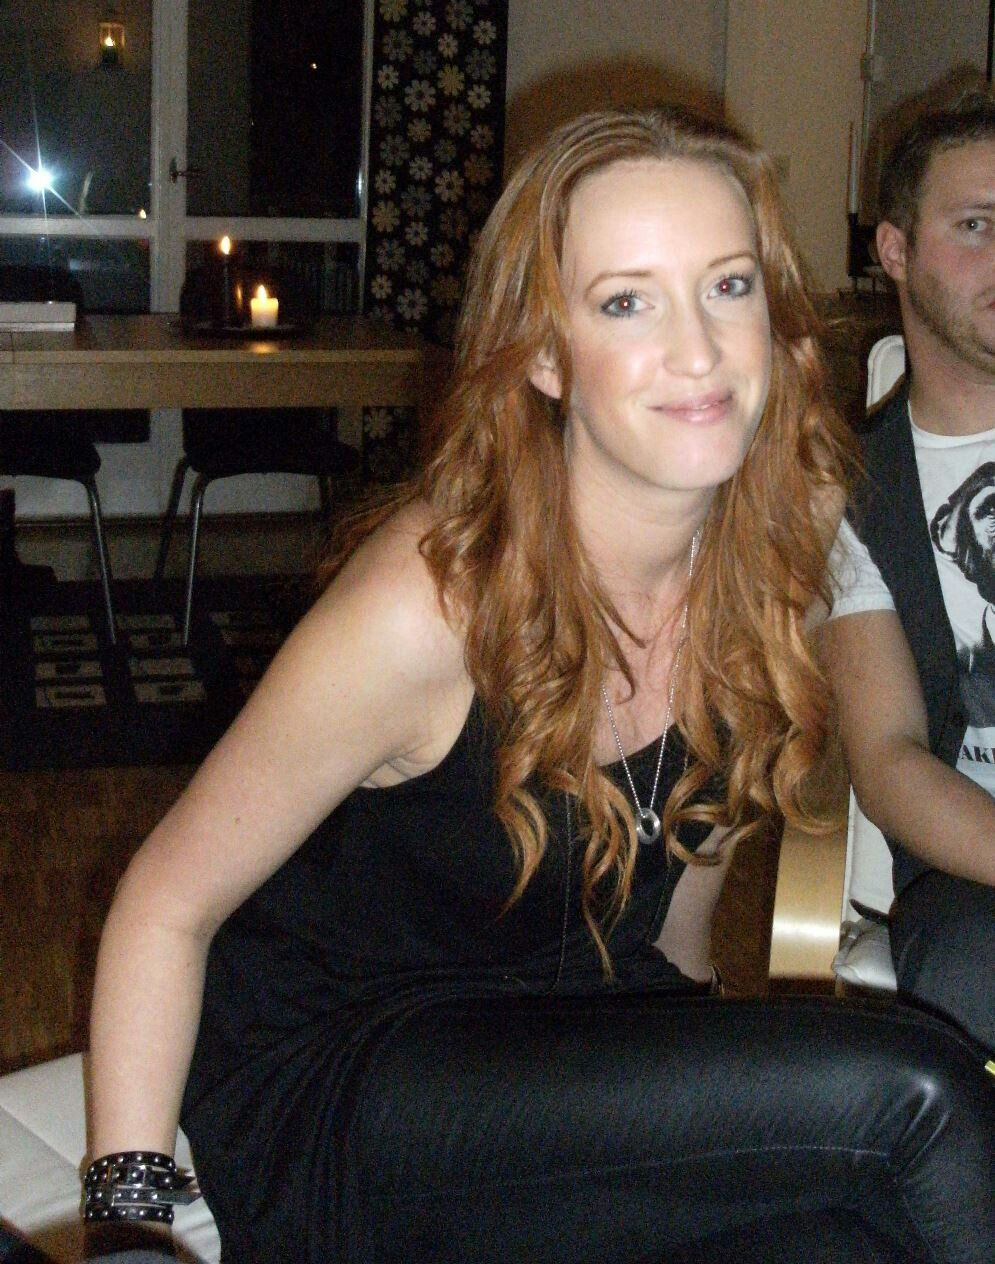 amateur redhead in black leather pants on couch | leather fashion